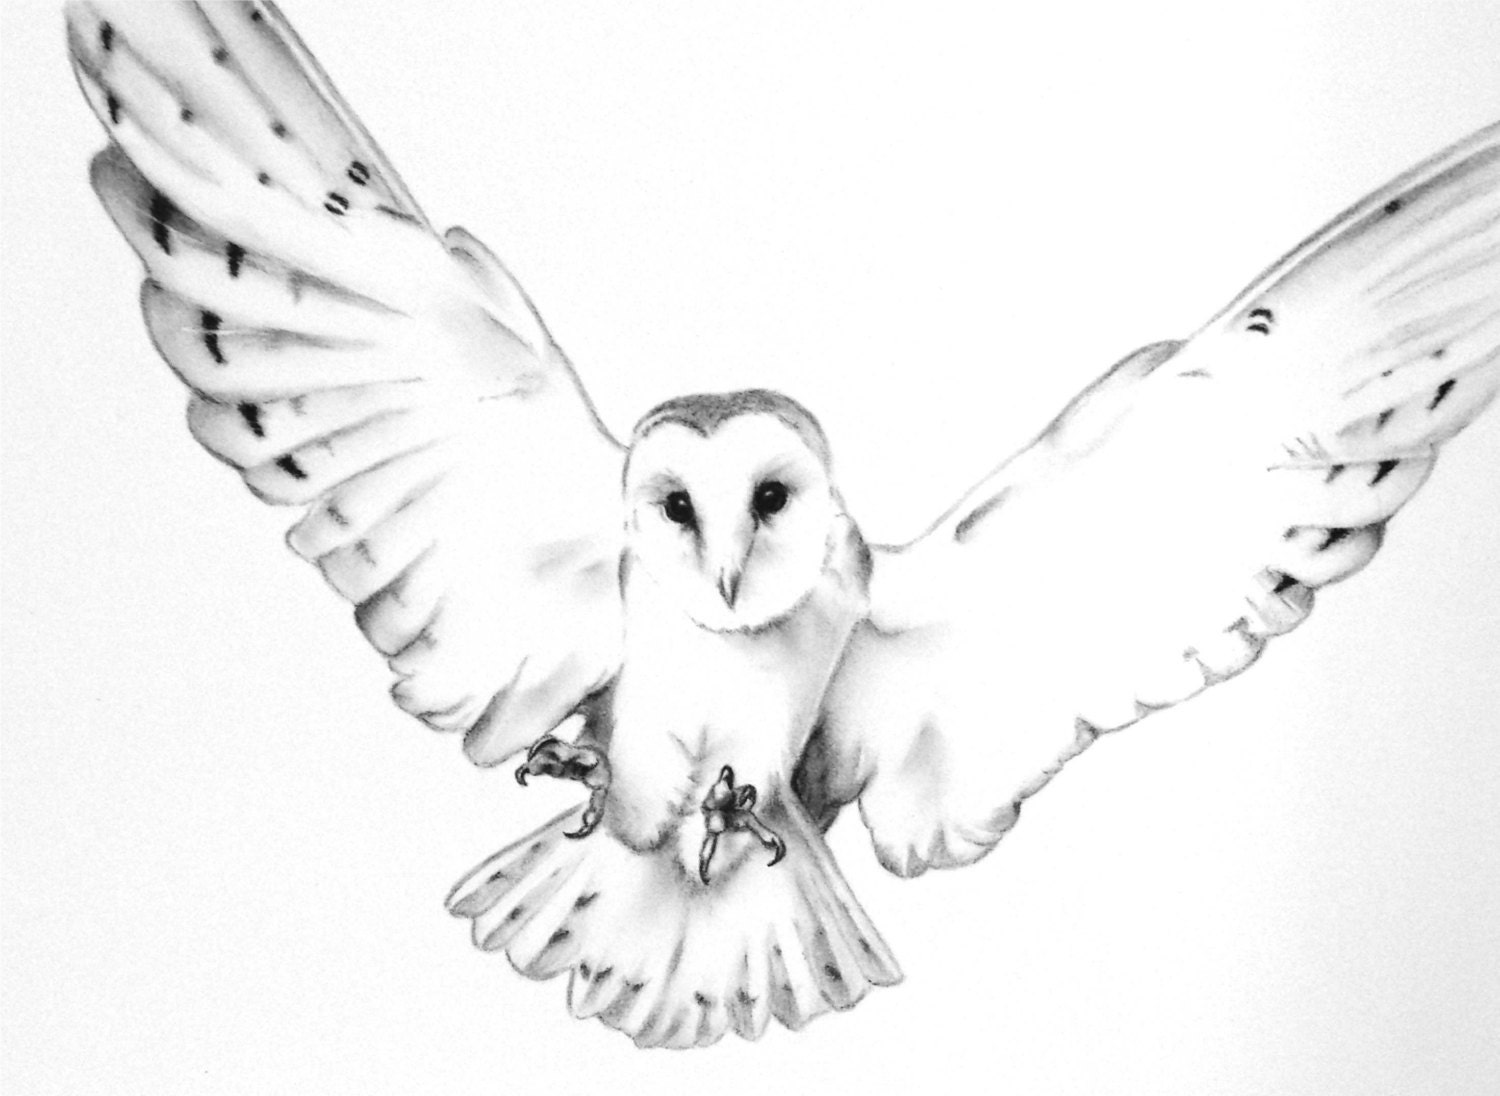 Flying owl drawings black and white - photo#10